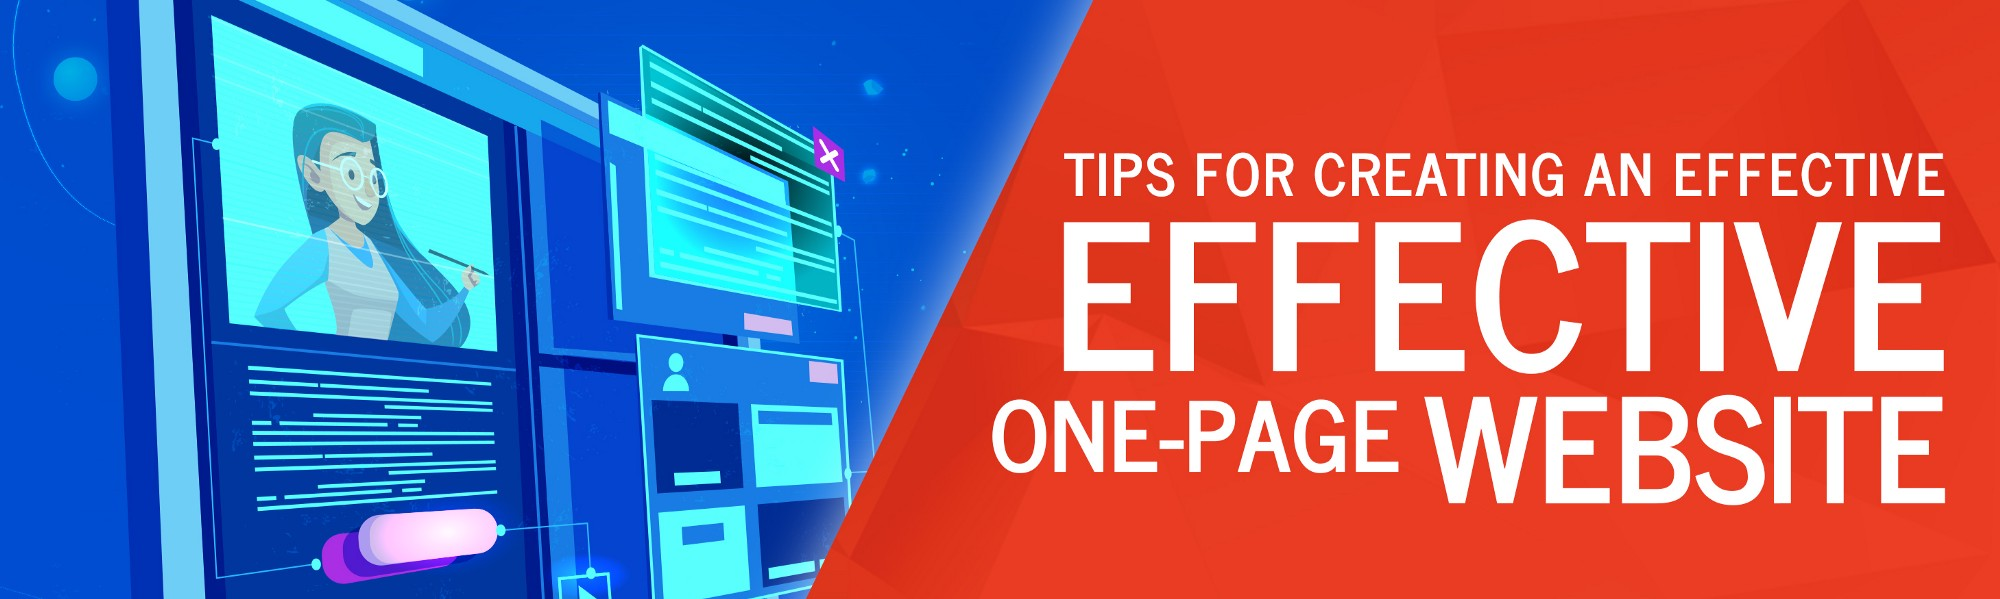 Tips for Creating an Effective One-Page Website